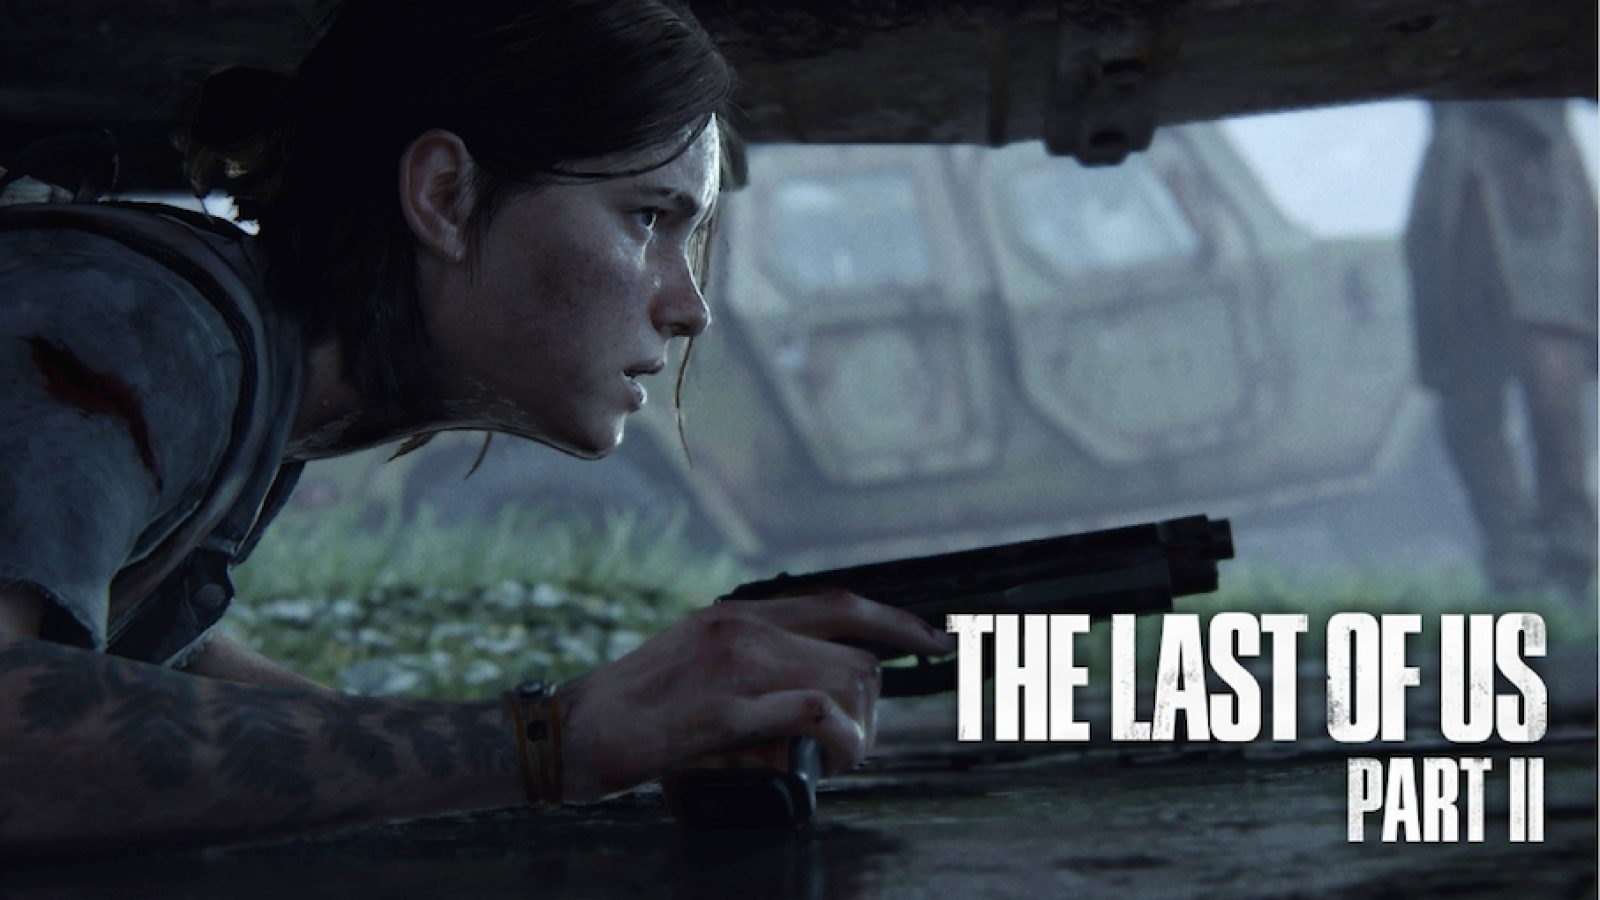 download The Last of Us Part II Set for Release in February 1600x900